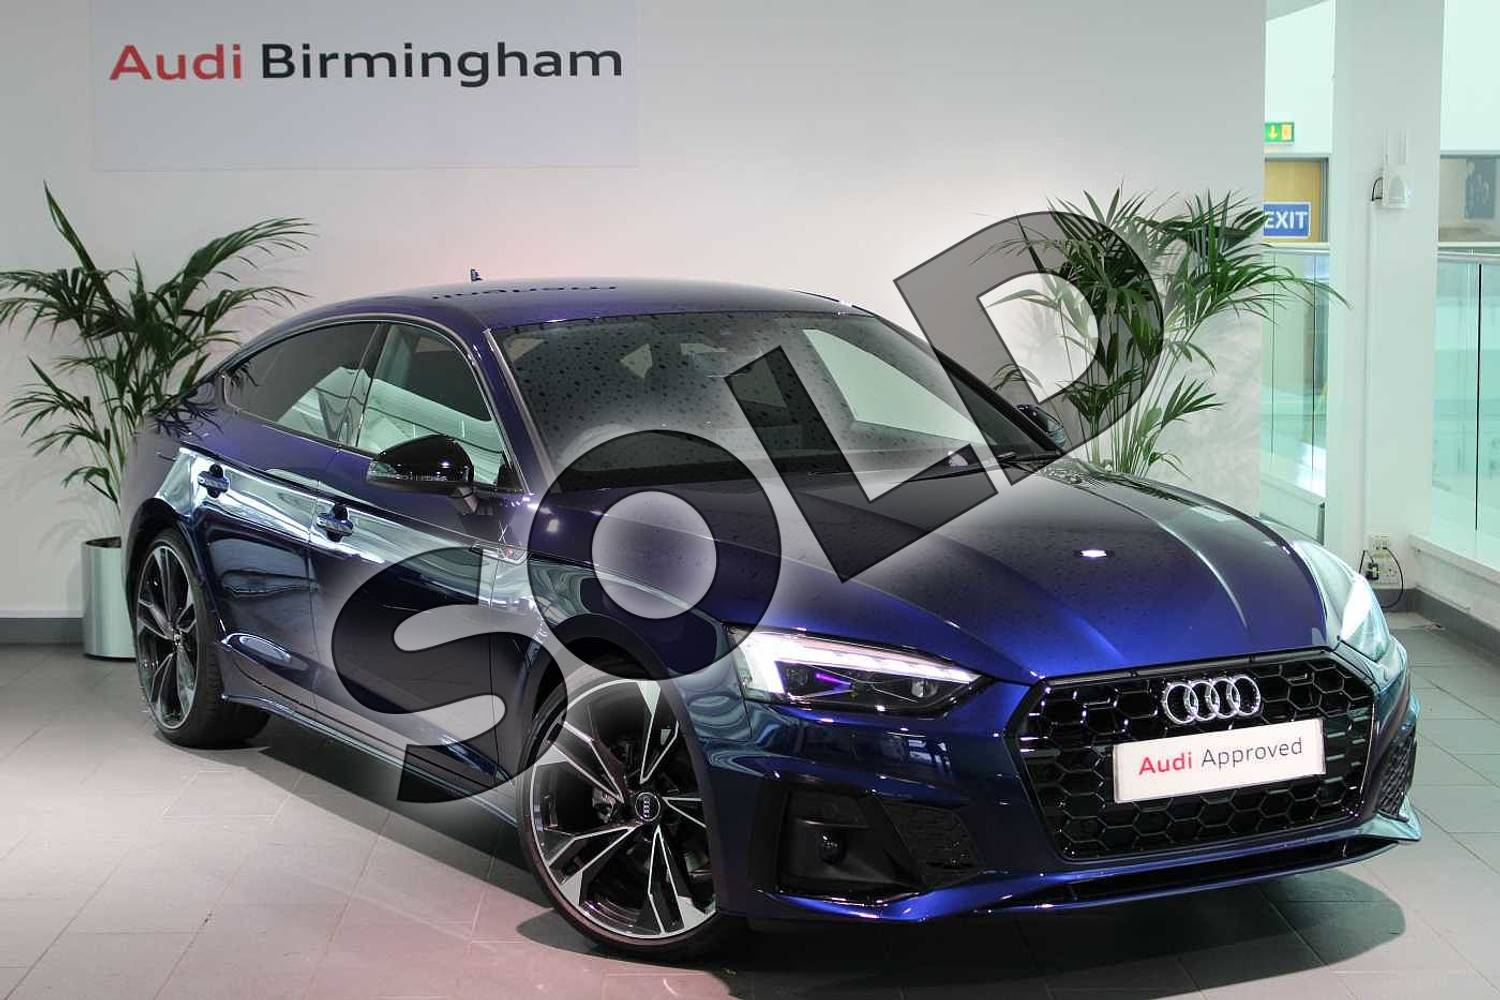 Audi A5 35 Tdi Edition 1 5dr S Tronic For Sale At Birmingham Audi Ref 034 U272292